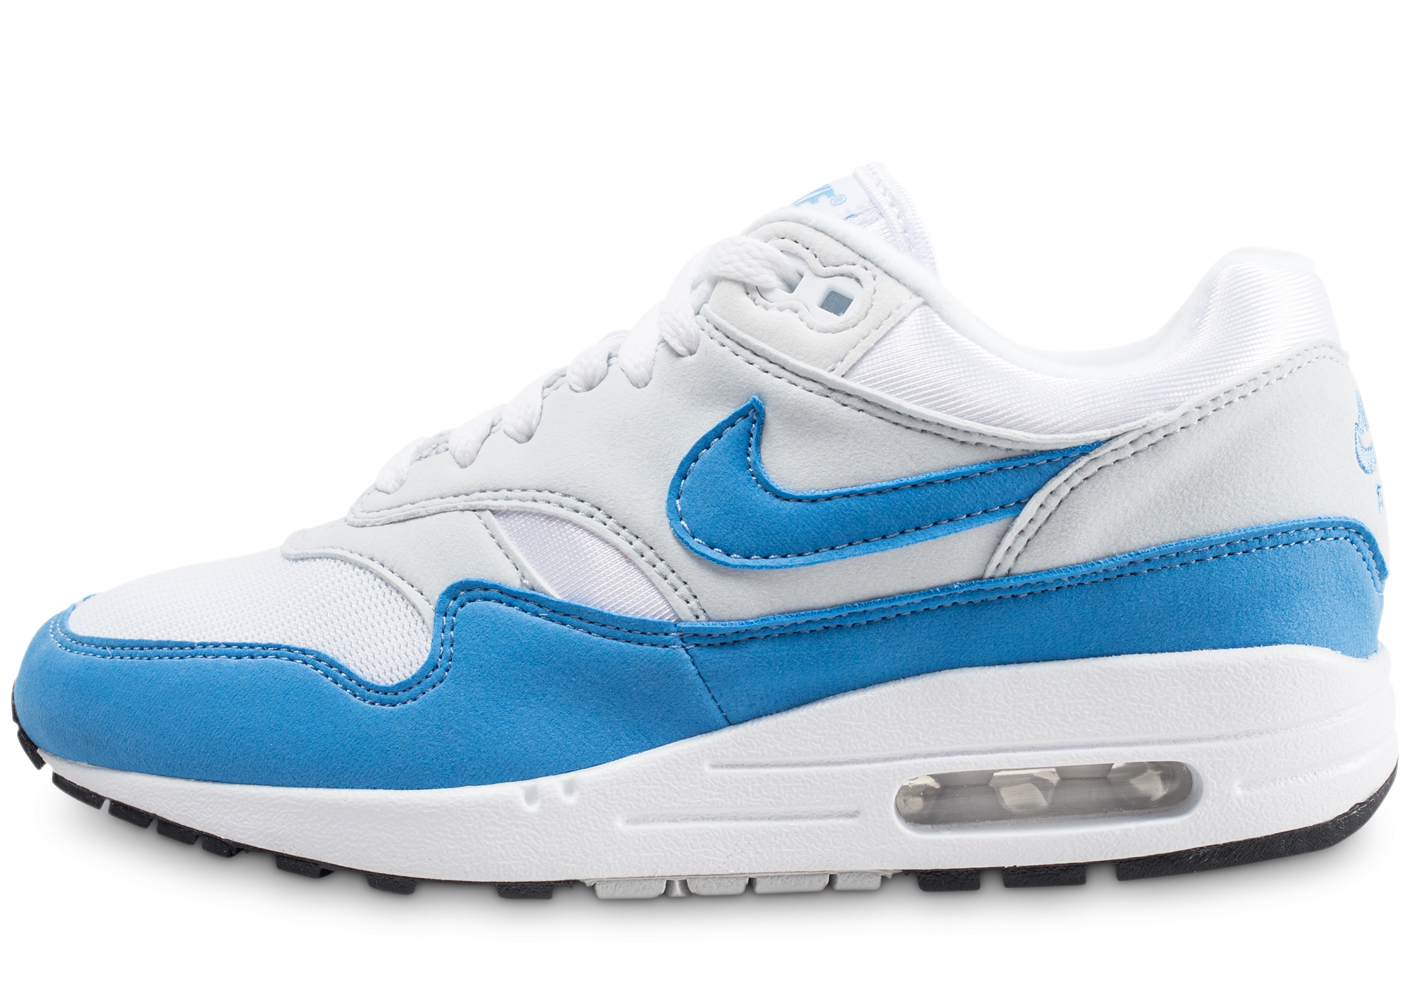 preview of new authentic authentic quality Nike Air Max 1 Essential blanche et bleue femme